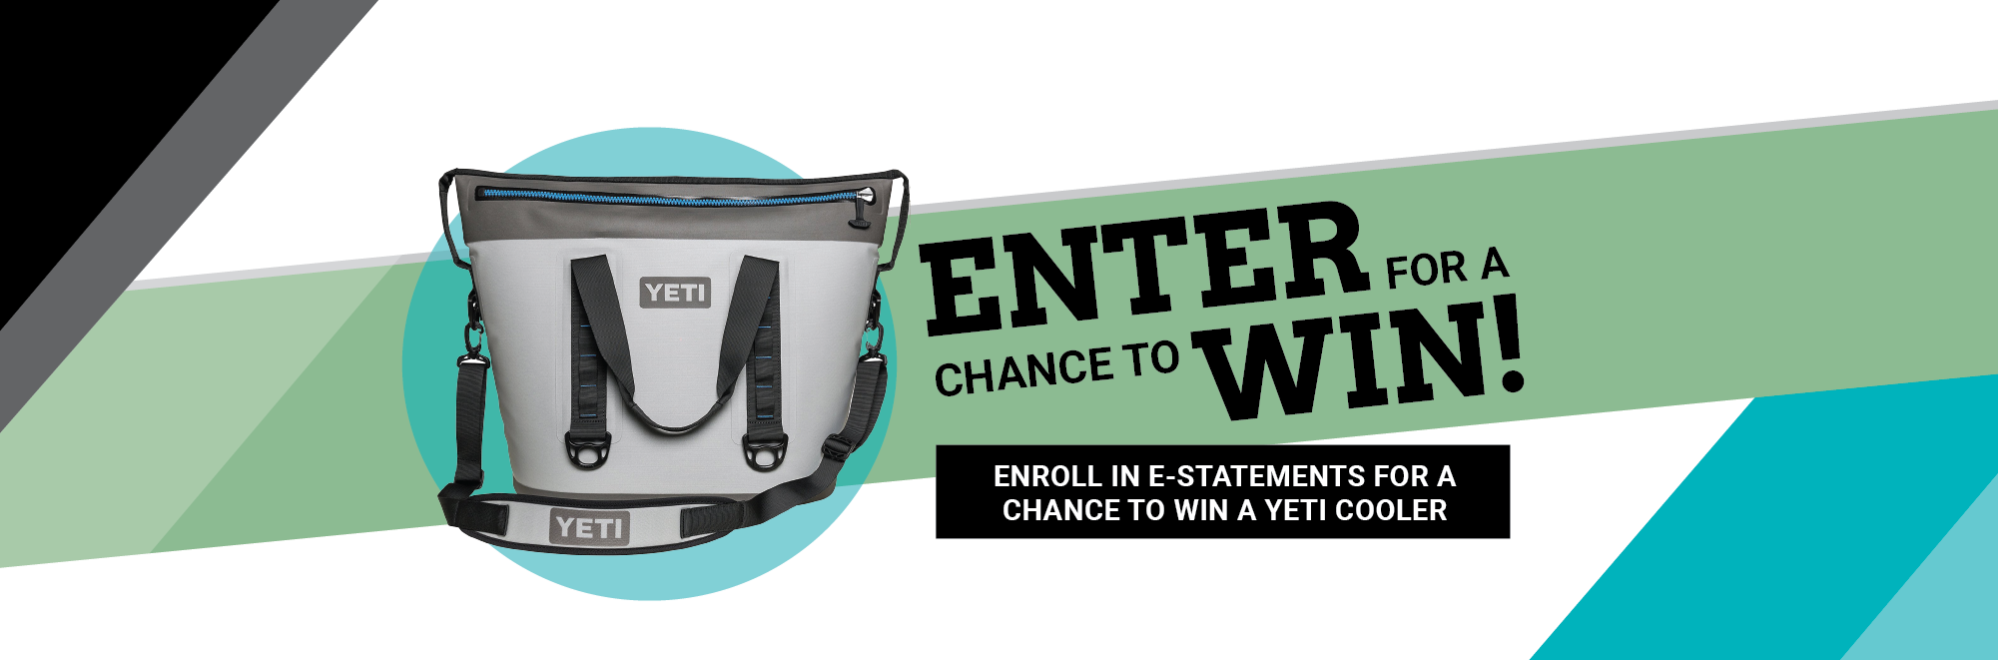 2019 e-Statement contest to win a Yeti Cooler.